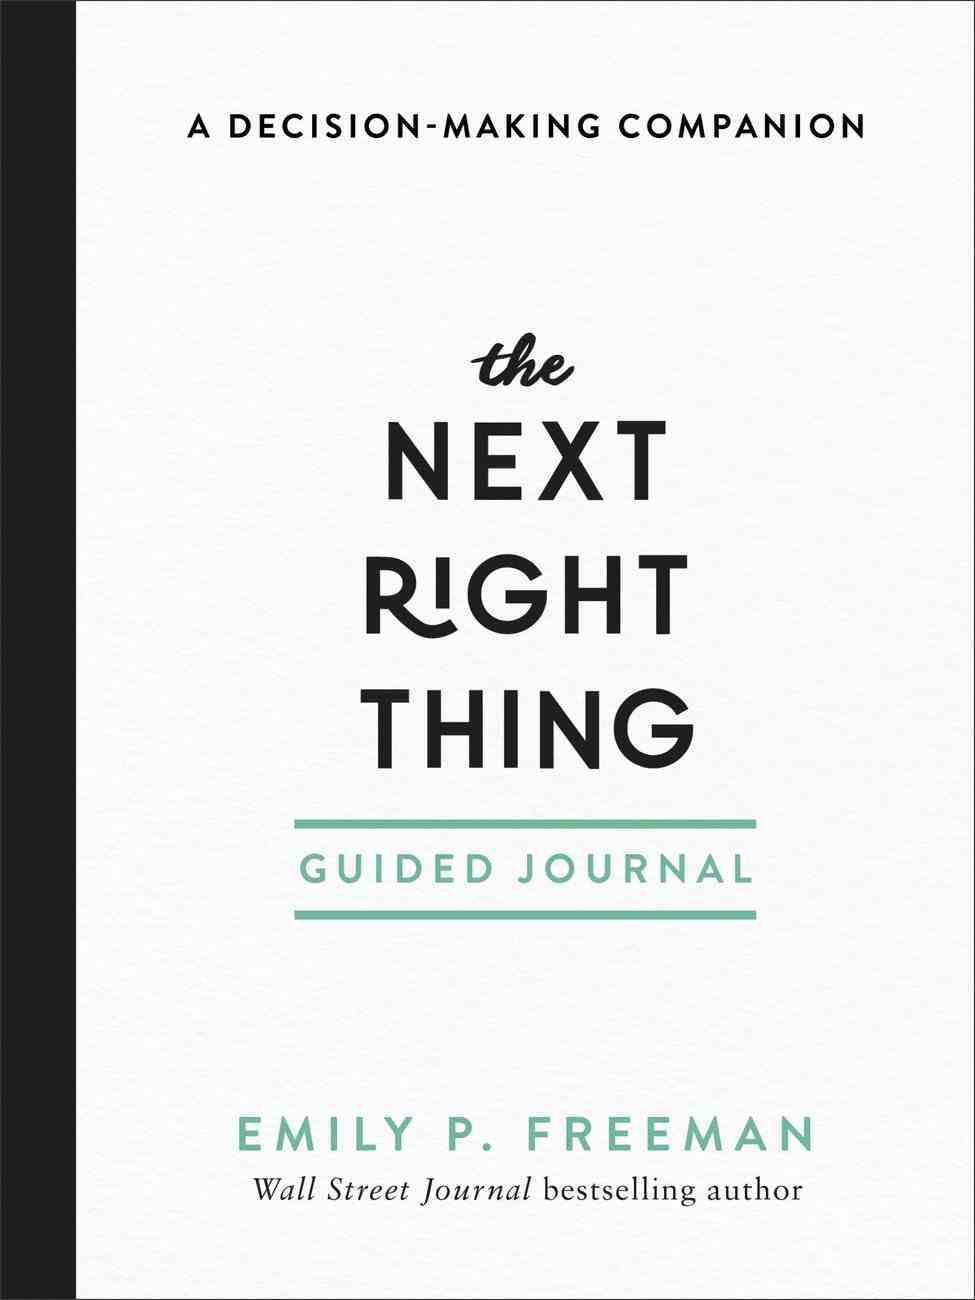 The Next Right Thing: A Decision-Making Companion (Guided Journal) Paperback